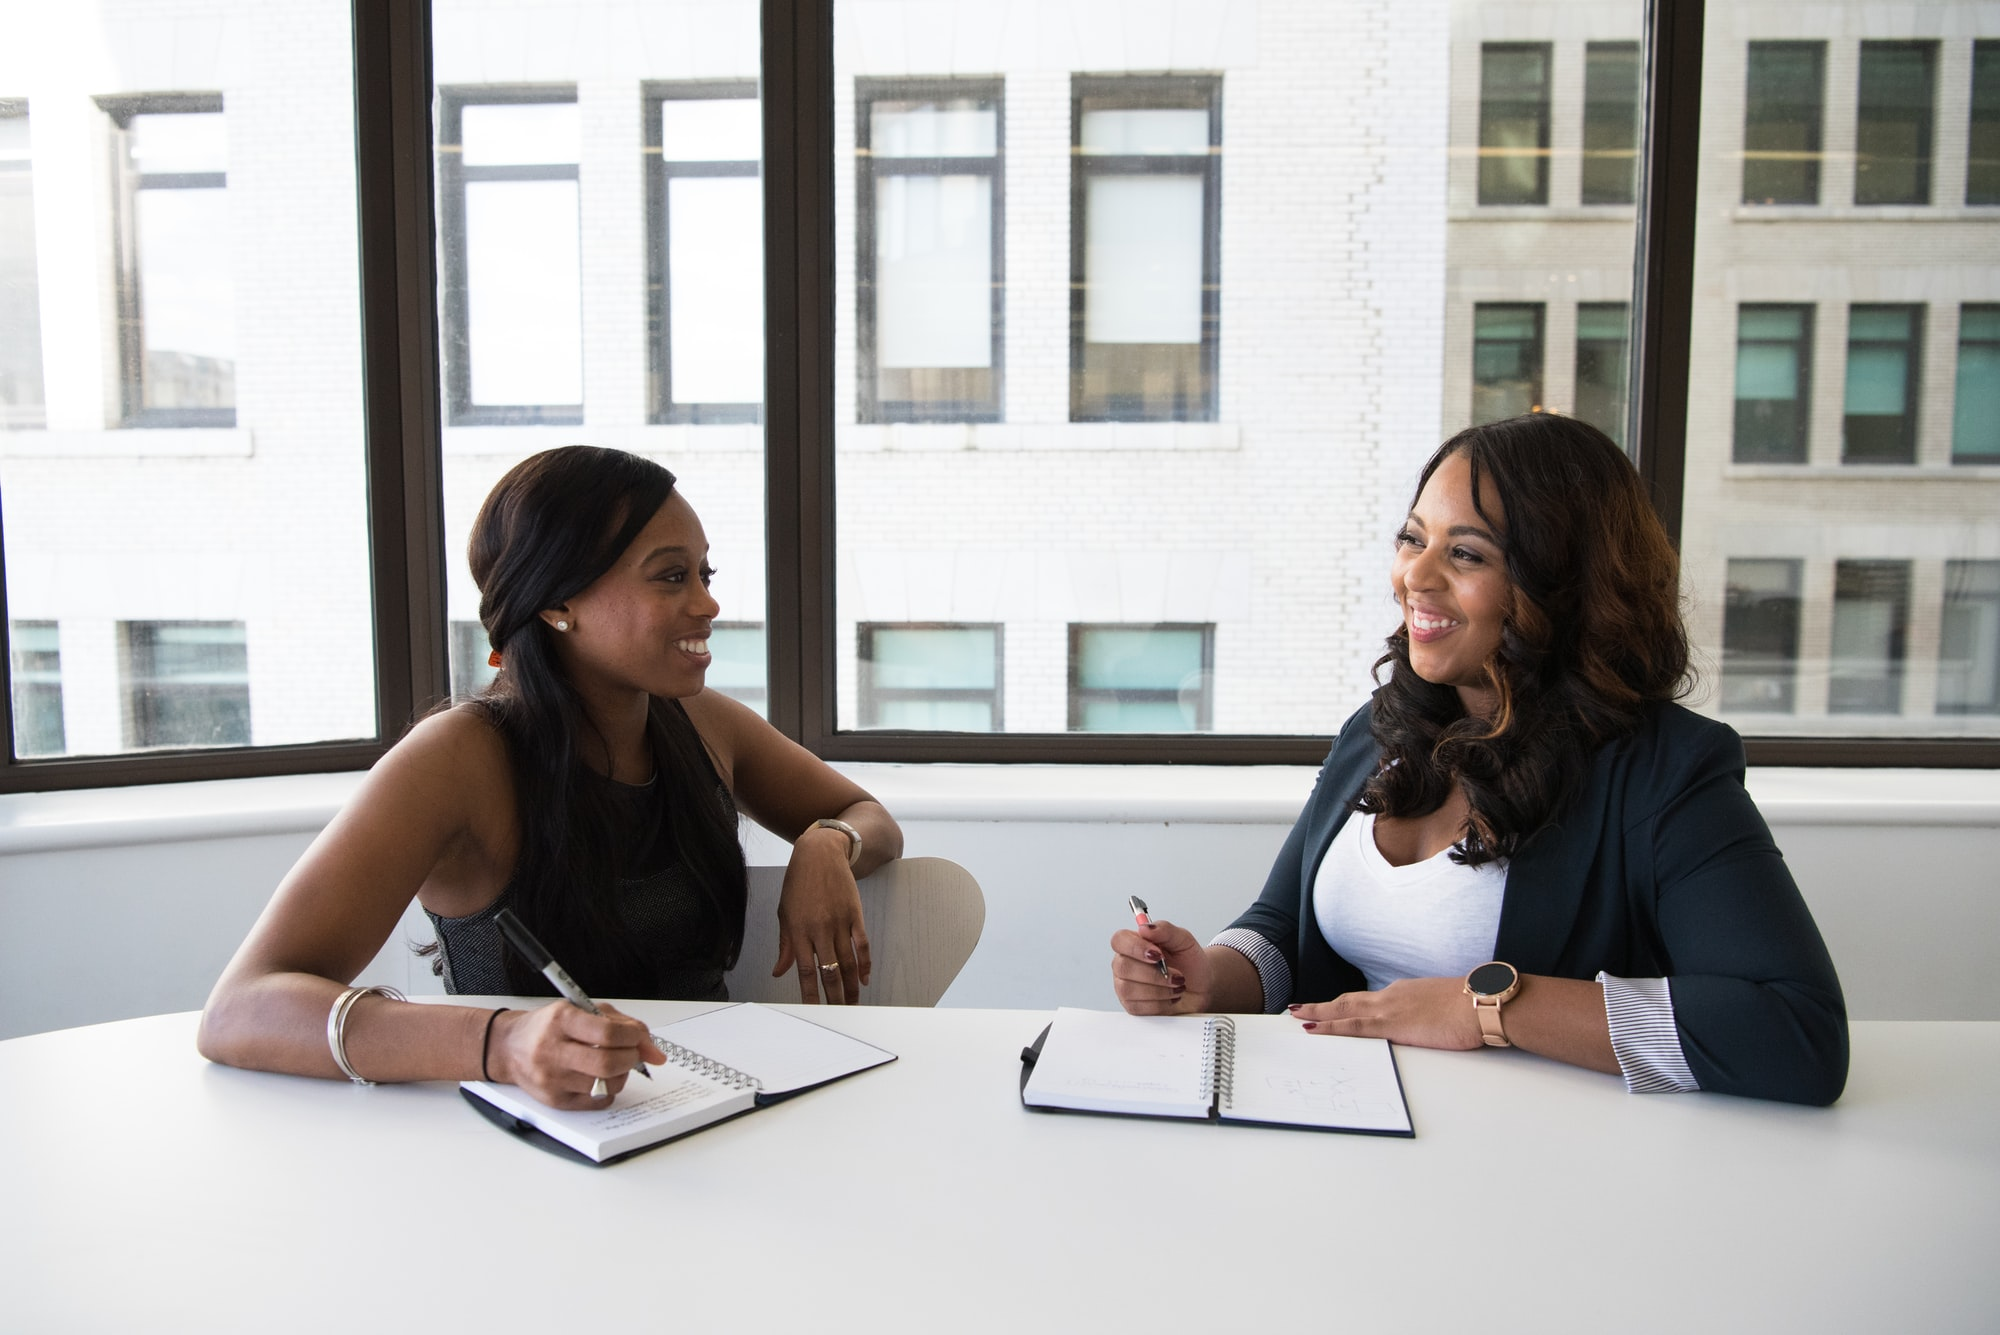 101 Best Questions to Ask in an Interview